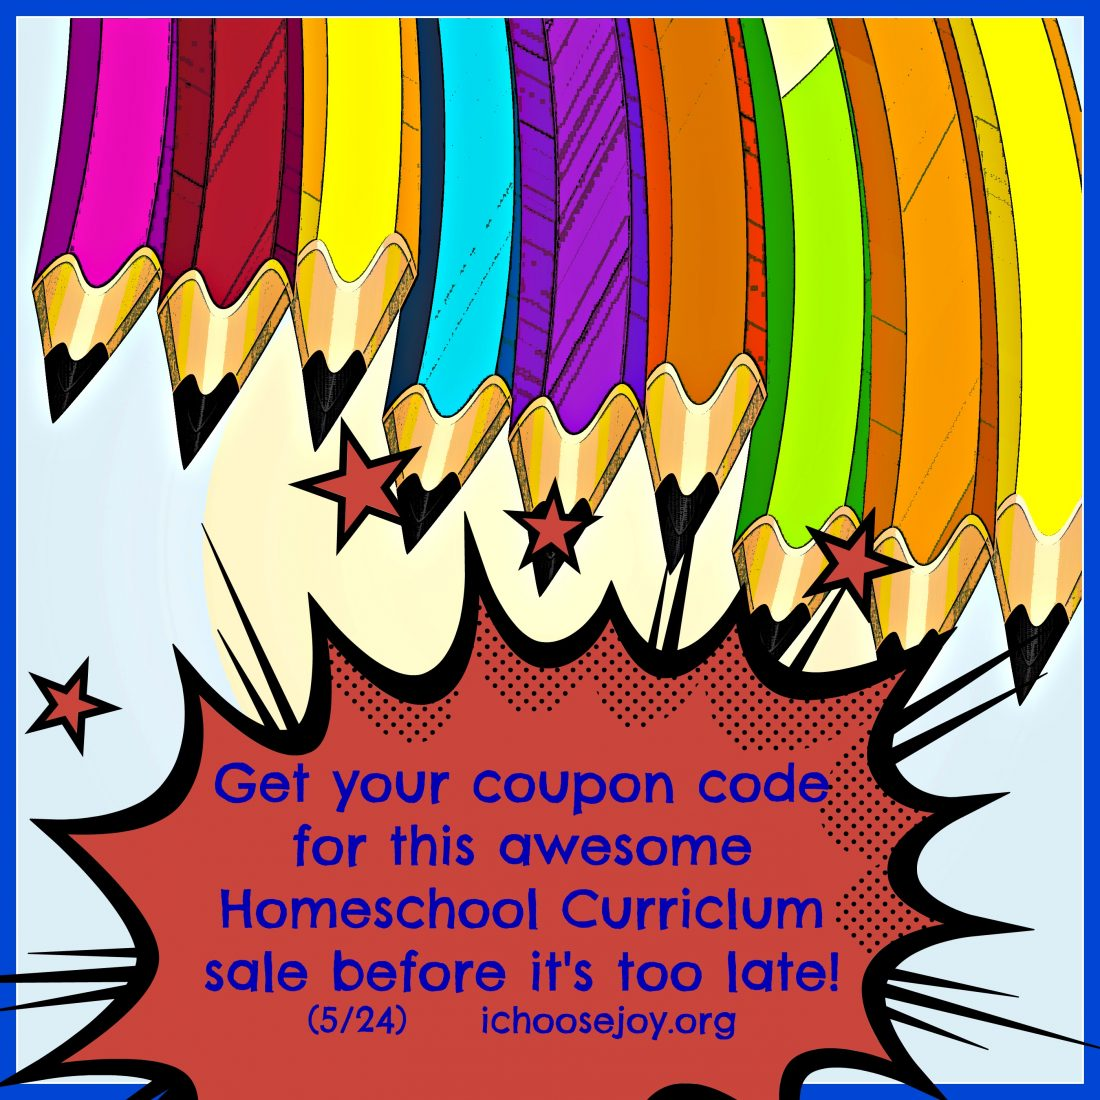 Homeschoolers: Did you get your coupon code yet?